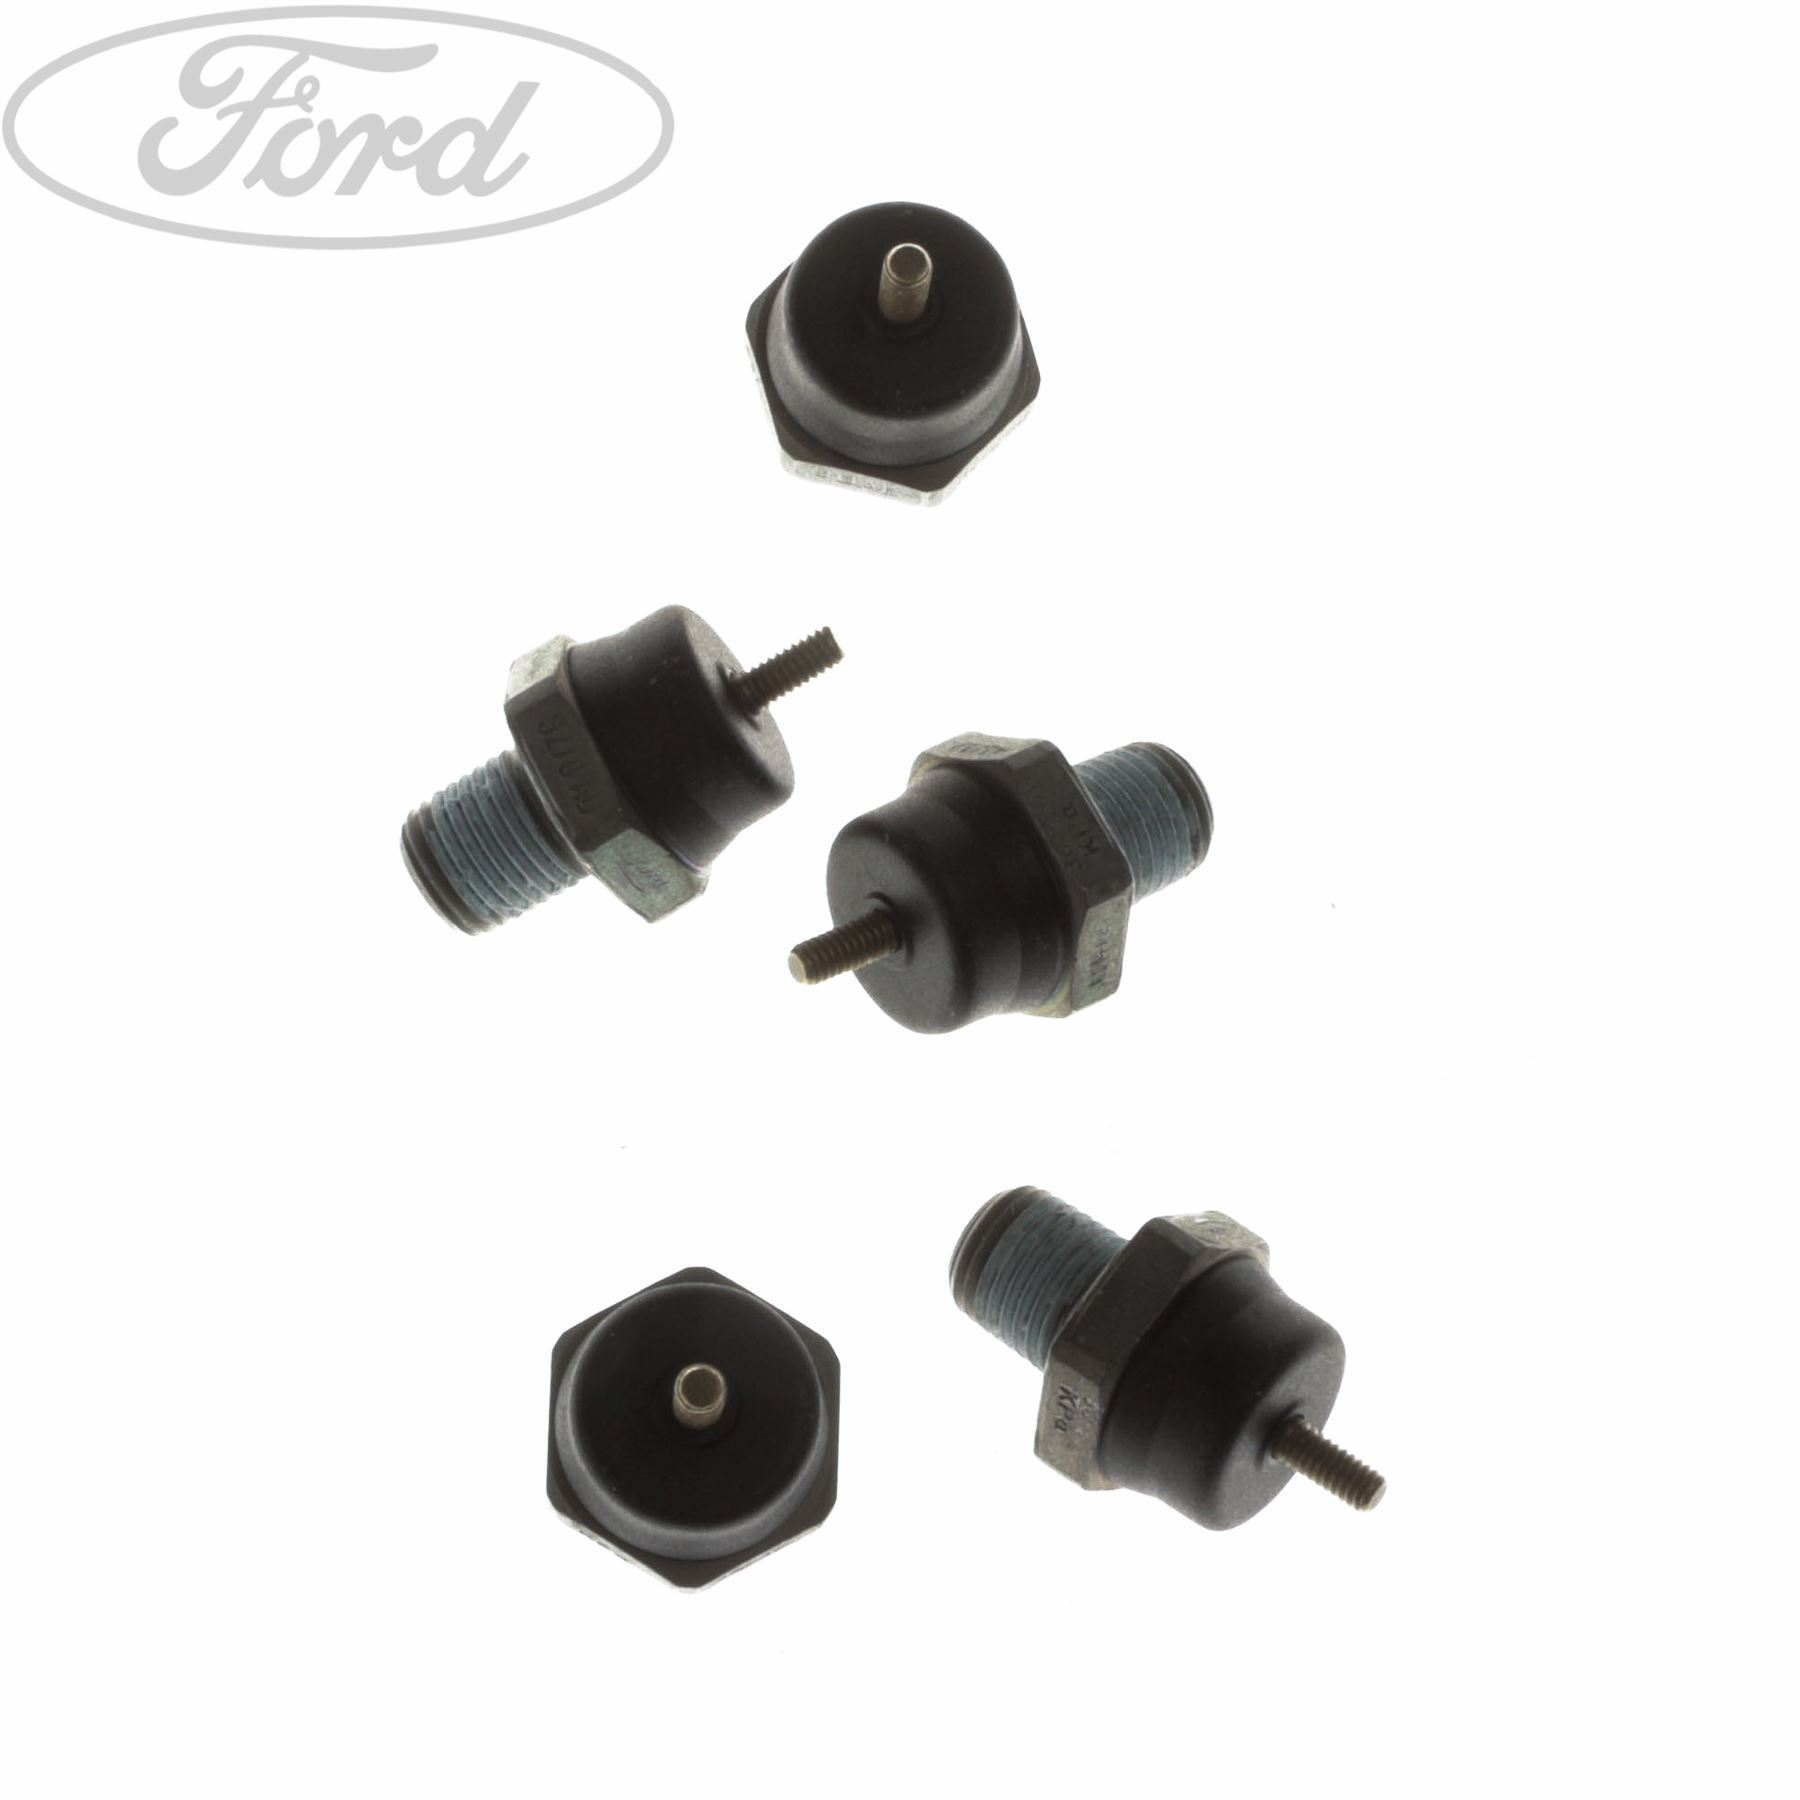 Ford Escort MK6 RS 2000 Genuine Lemark Oil Pressure Switch Replacement